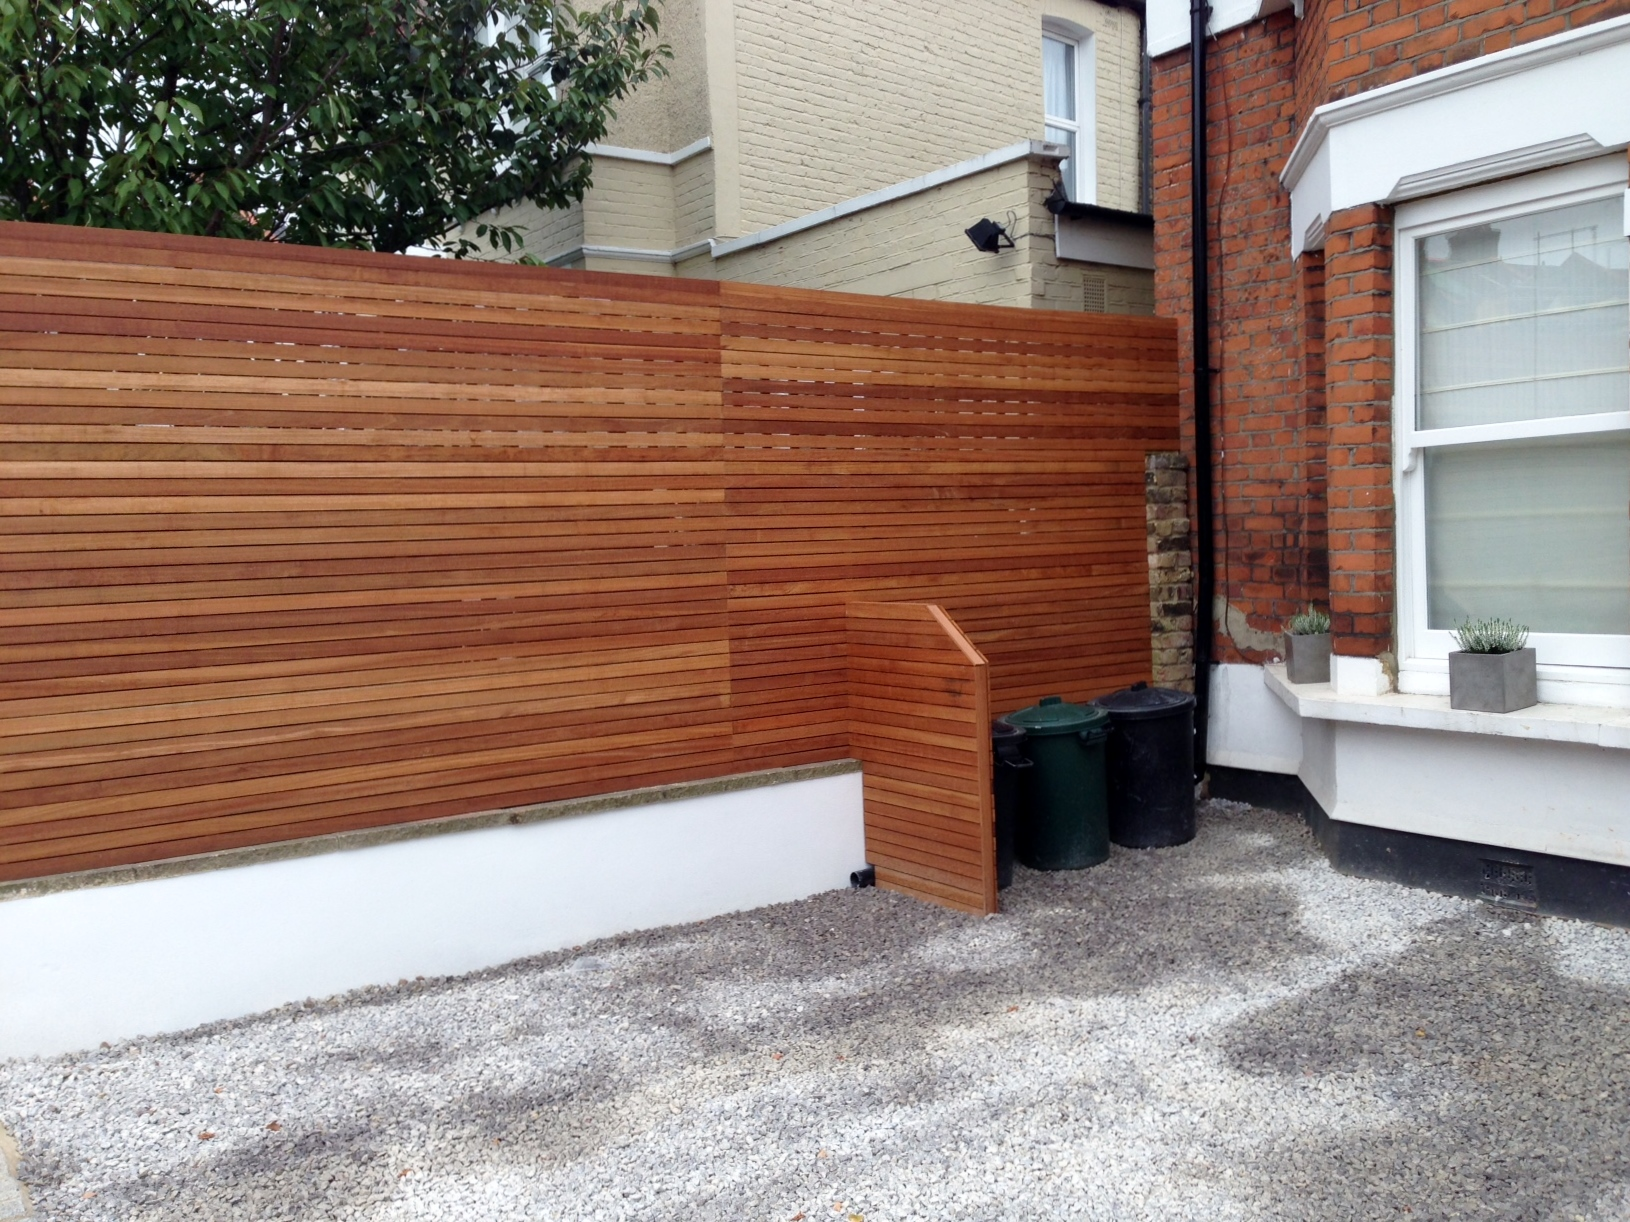 front garden drivewat gravel travertine paving path hardwood privacy screen trellis tooting london (5)